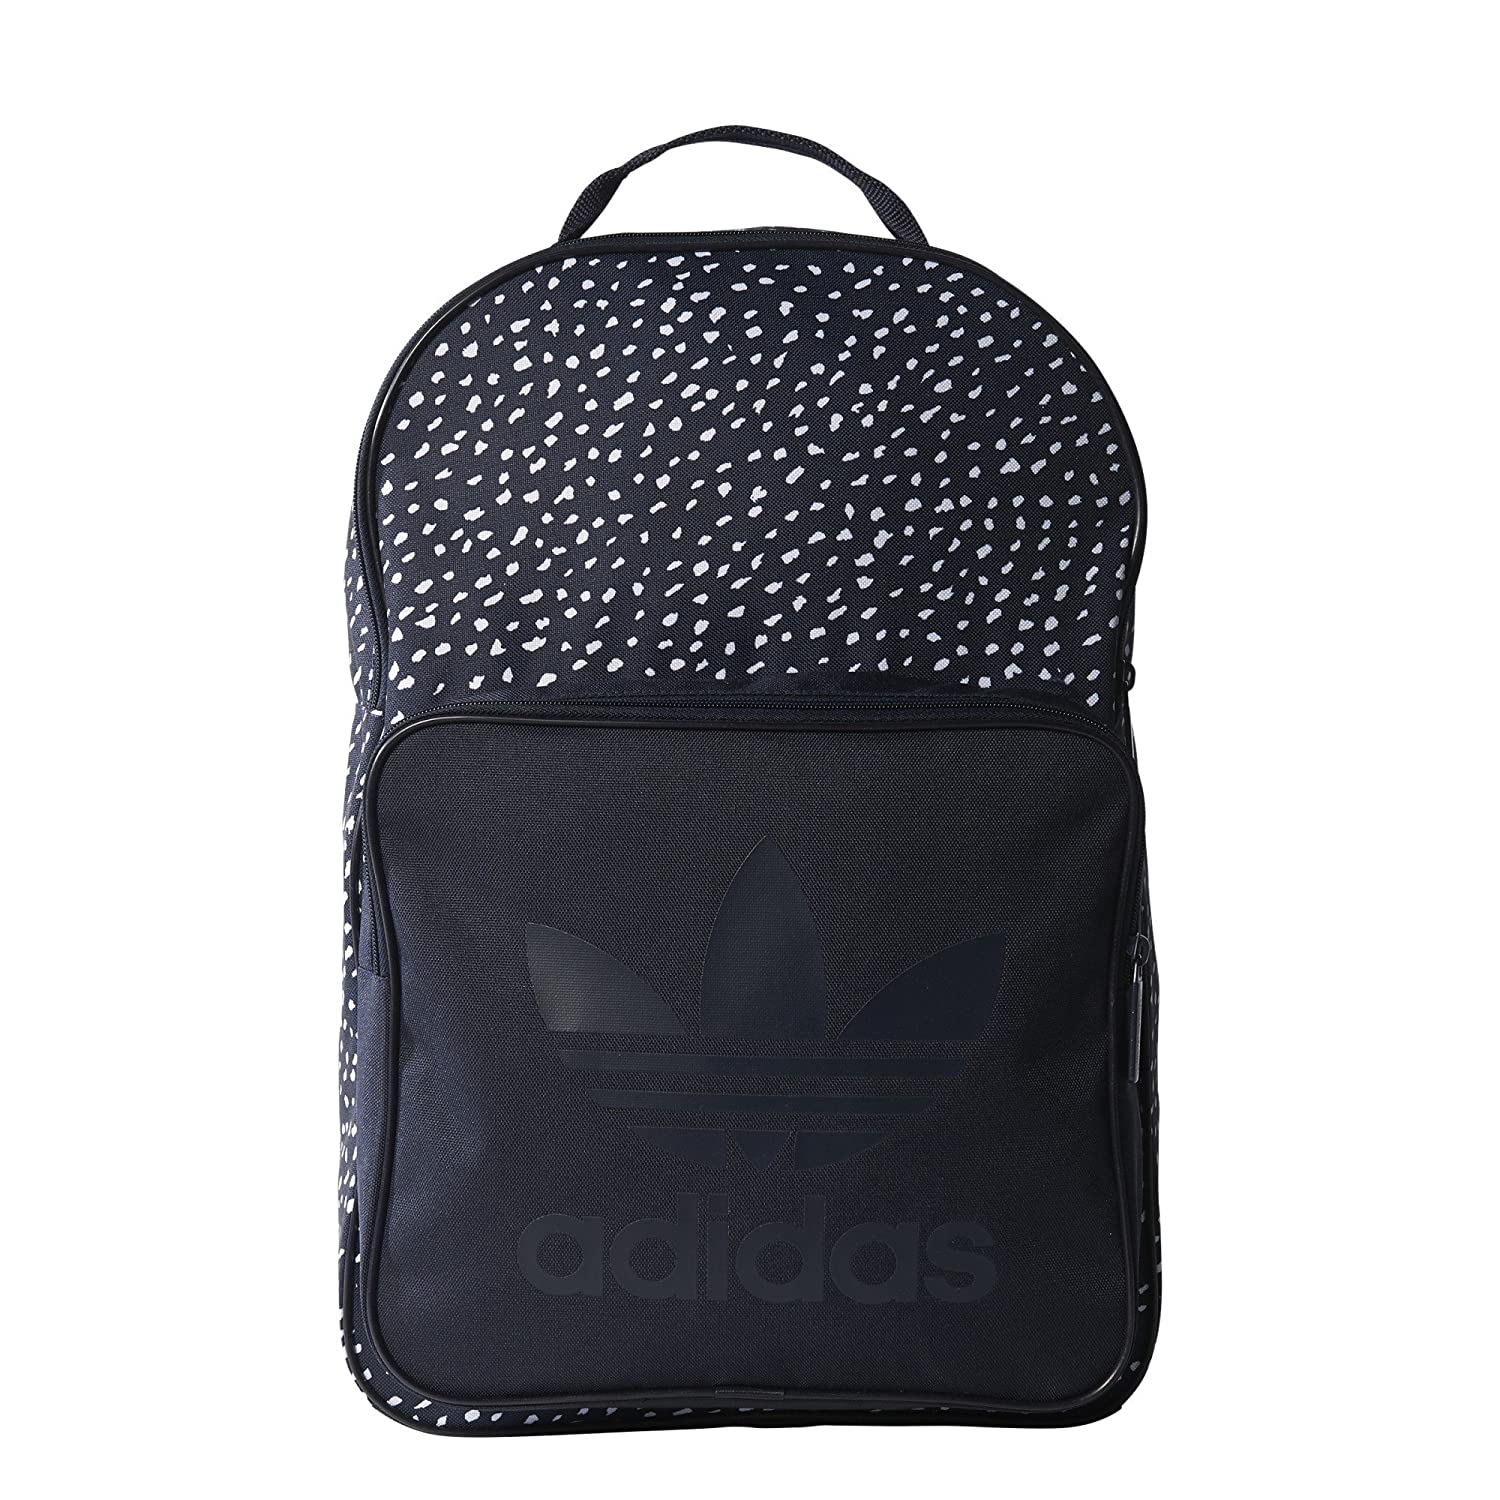 Adidas Classic Graphic Hombre Backpack Azul Unisex Adulto (Multco) NS BP7413